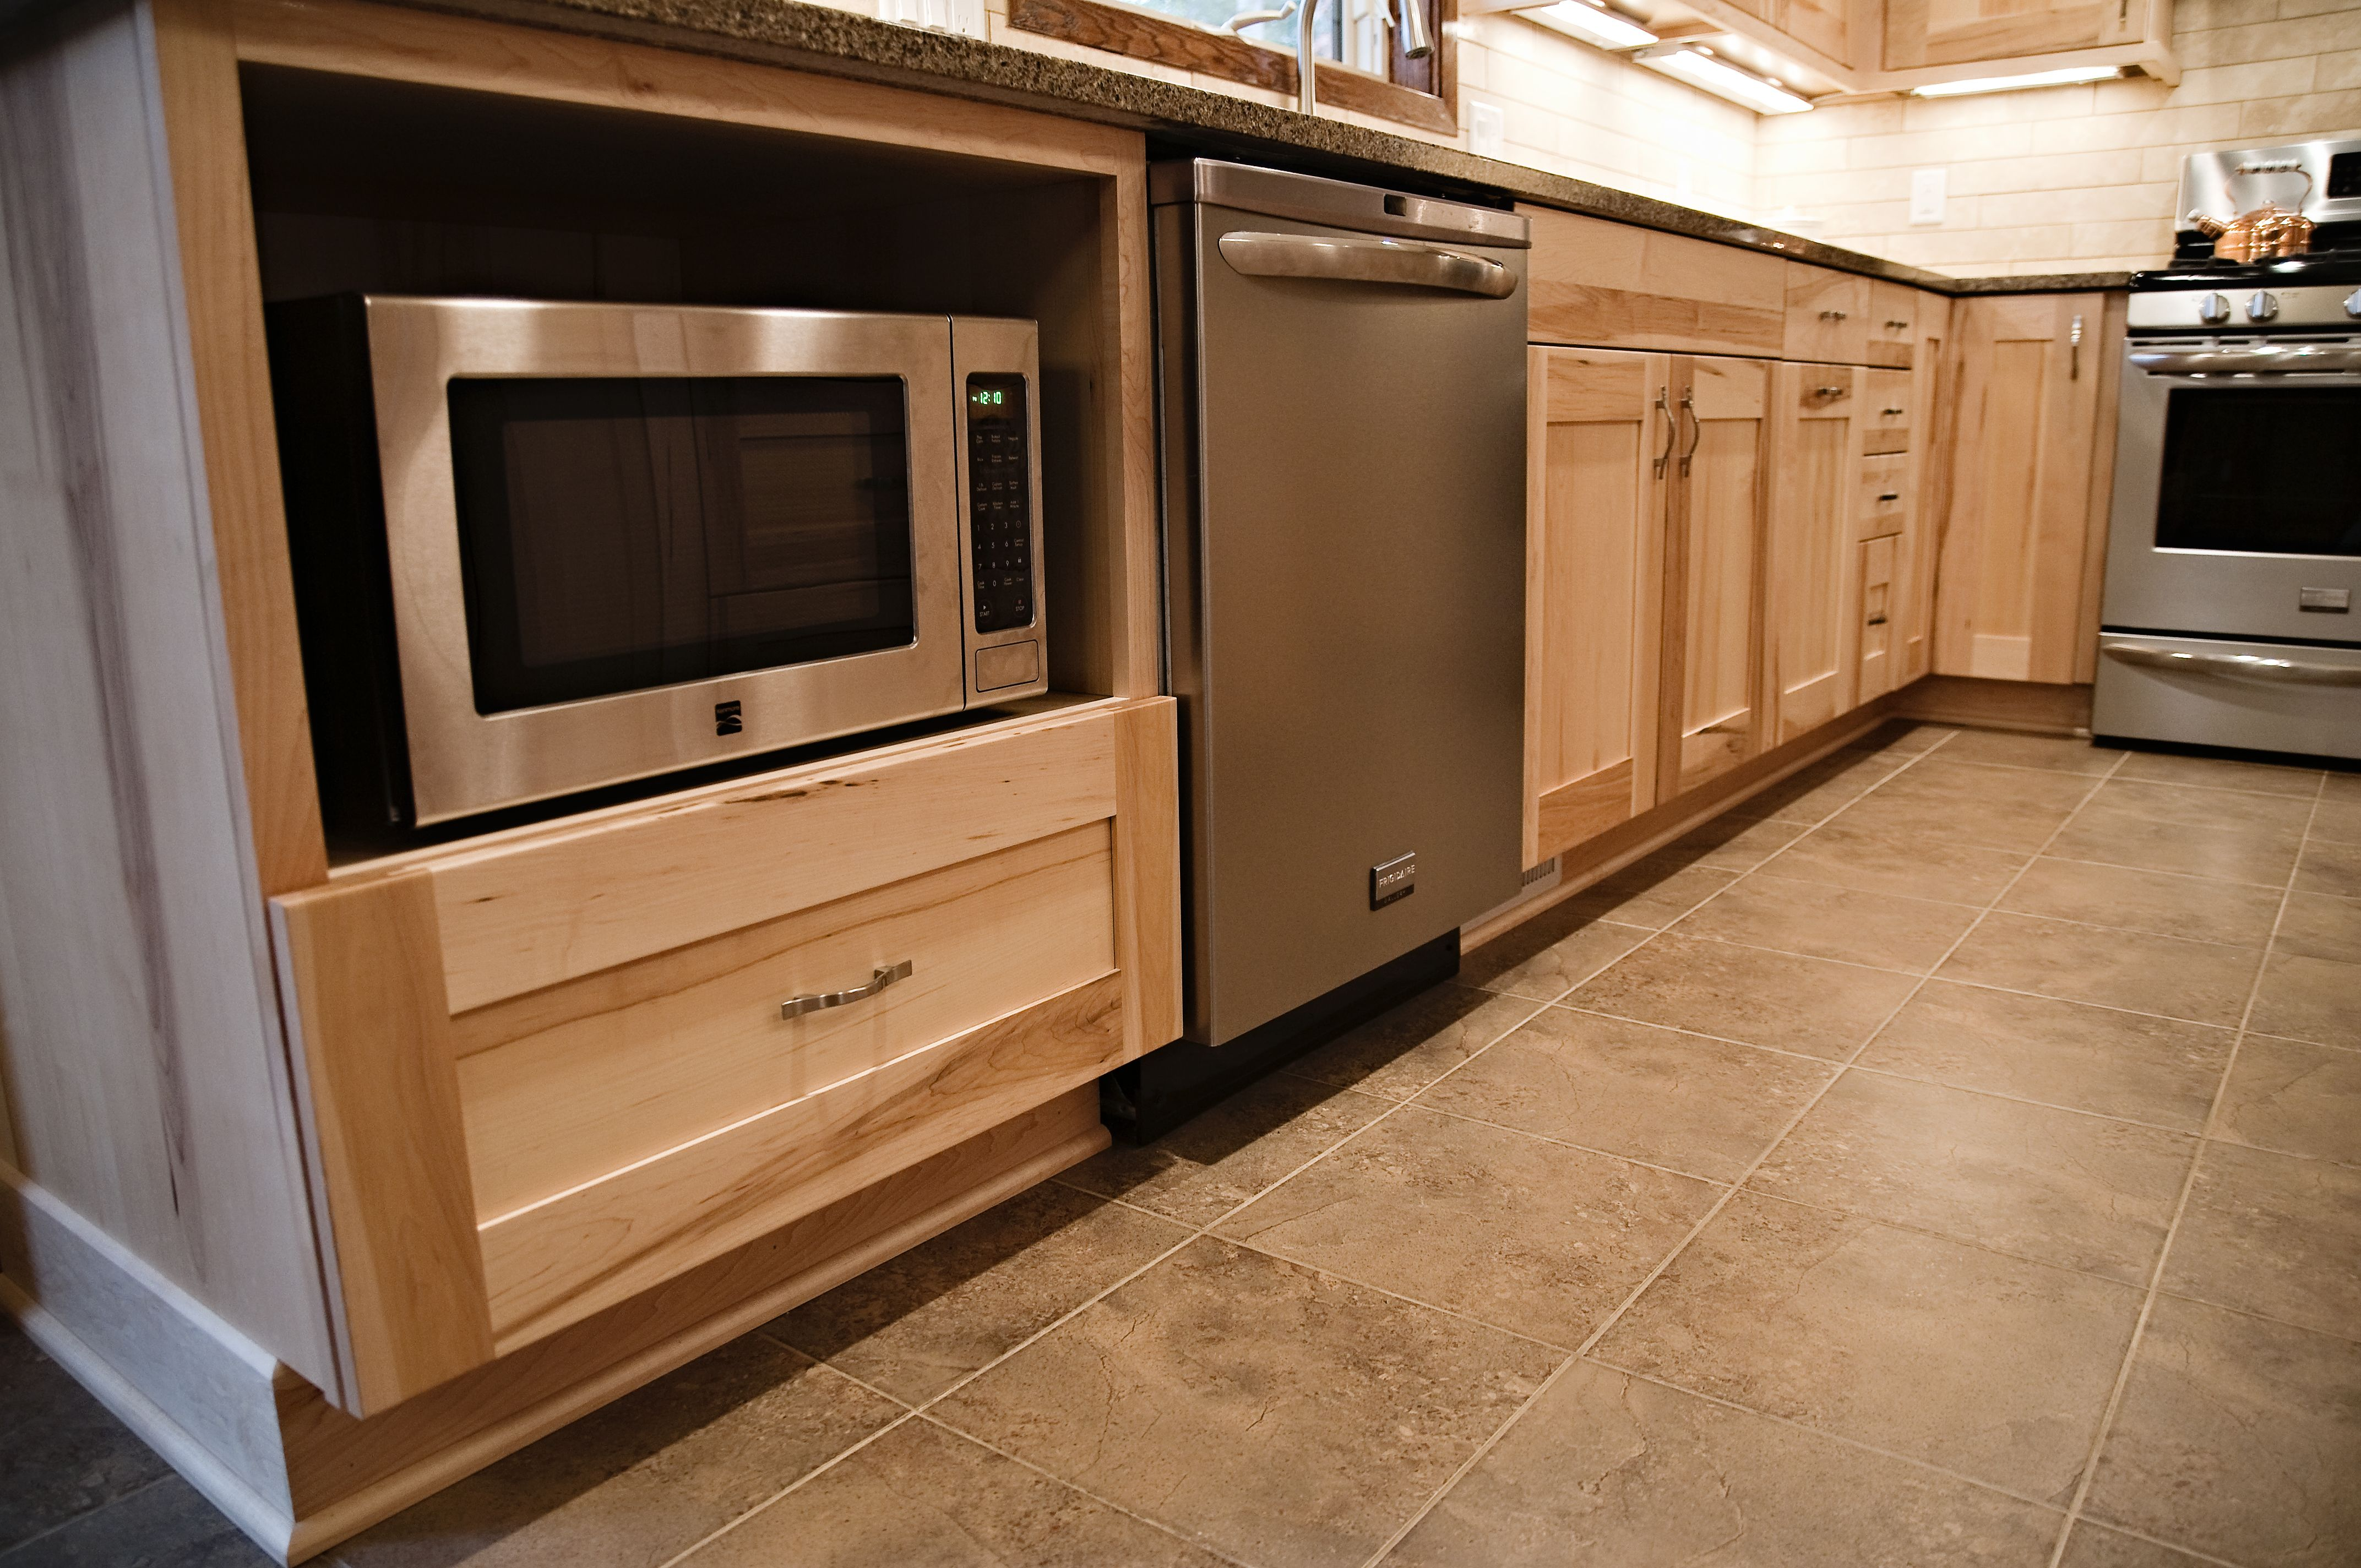 Microwave in Base Cabinet  Kitchens Design By Cella